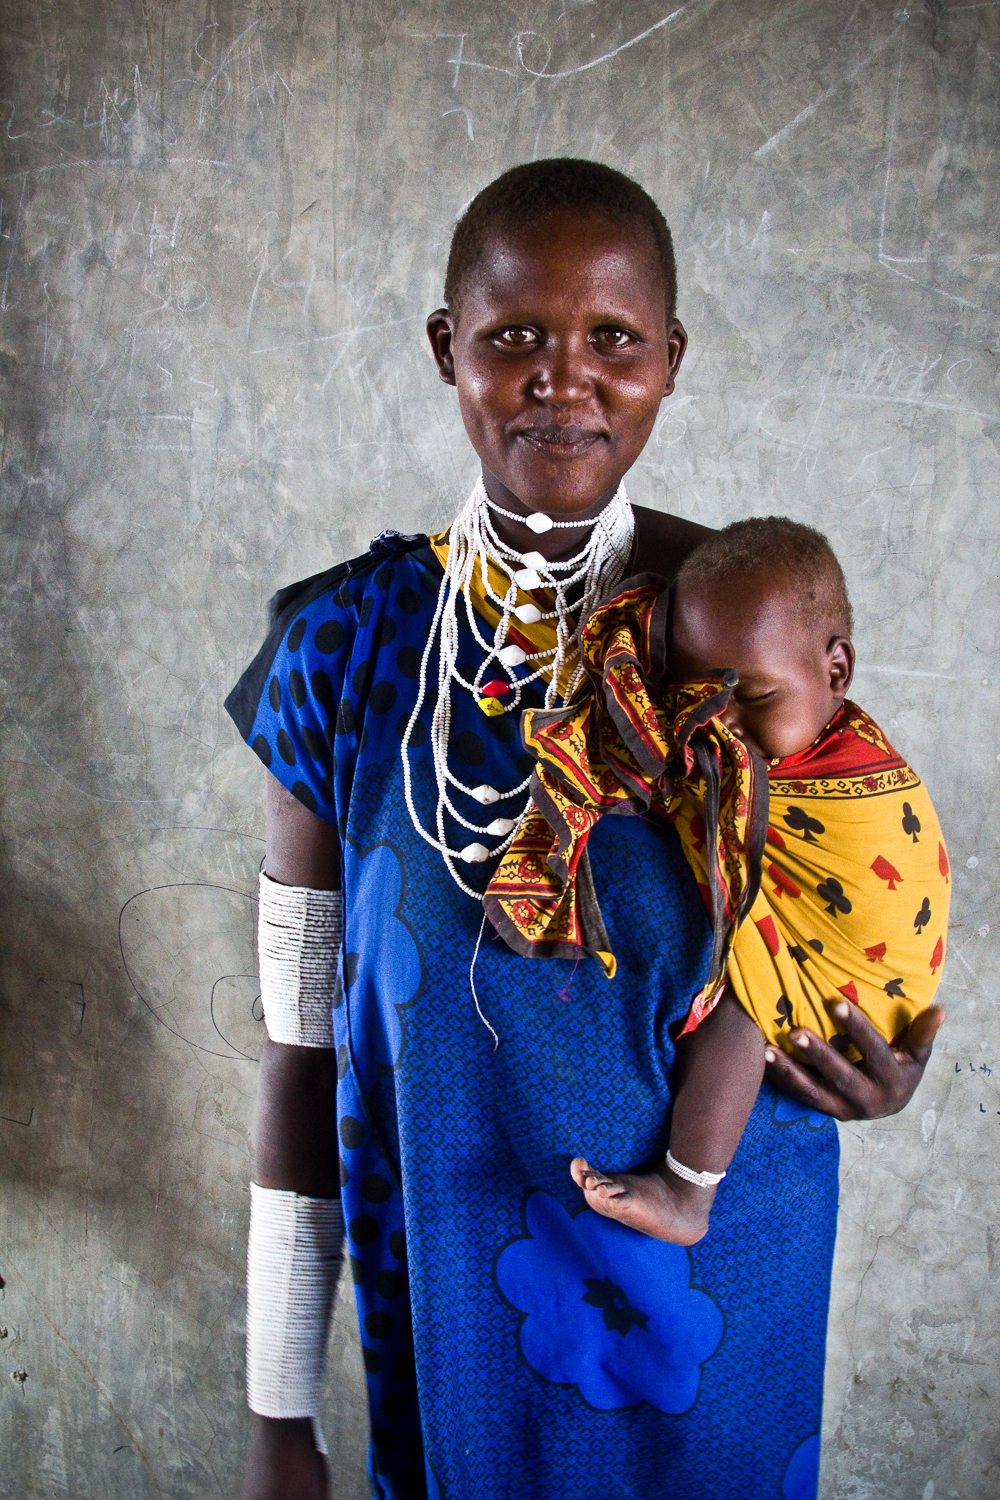 A mother poses with her baby in a school in a rural village in Kenya.